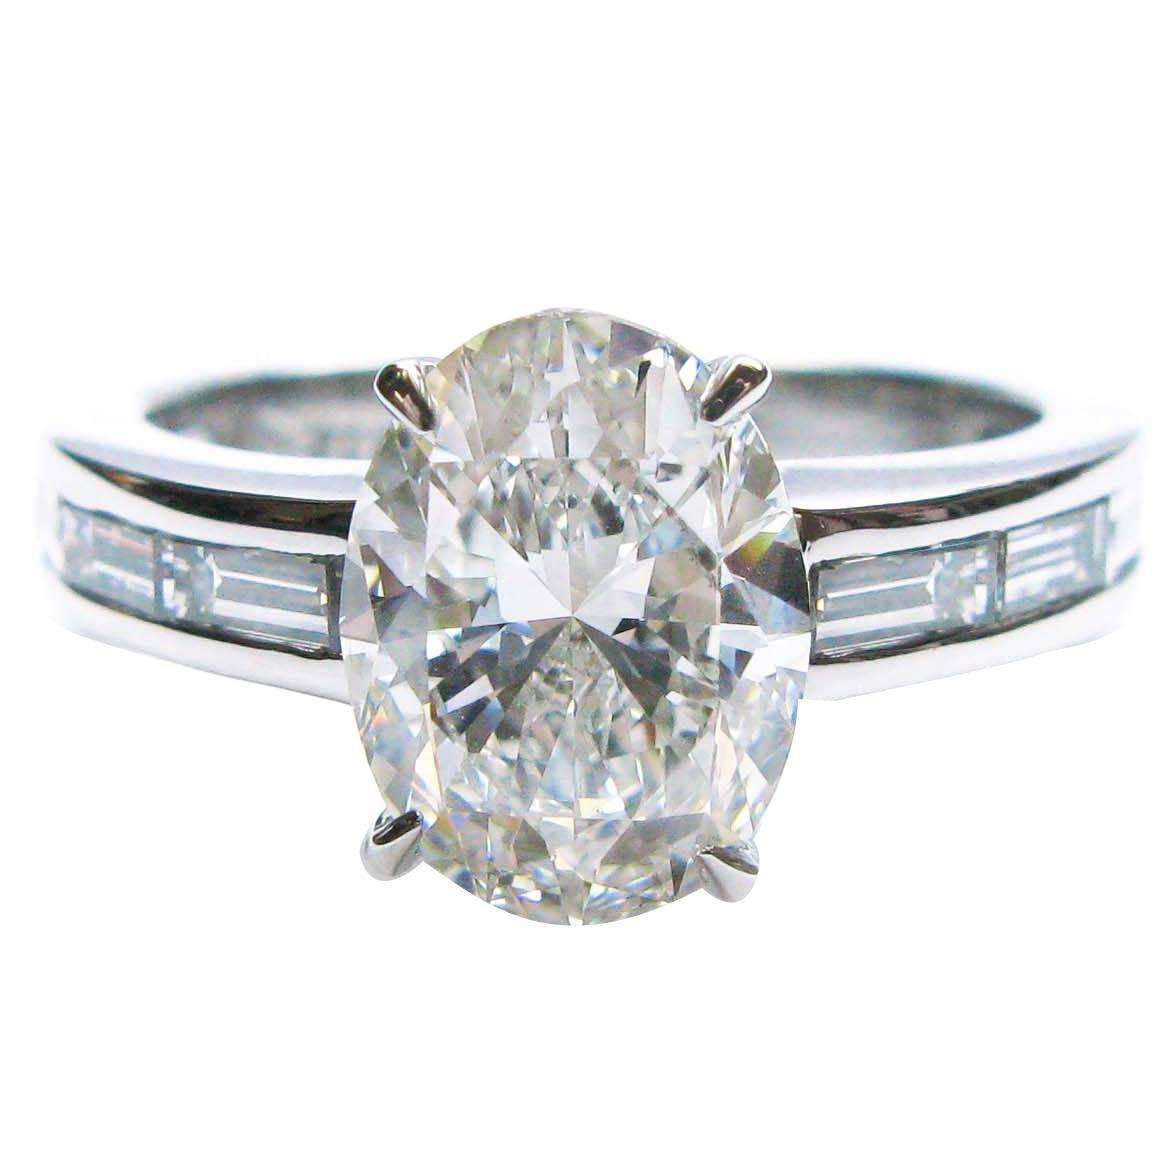 2 01 Carat GIA Cert Oval Diamond Platinum Engagement Ring For Sale at 1stdibs